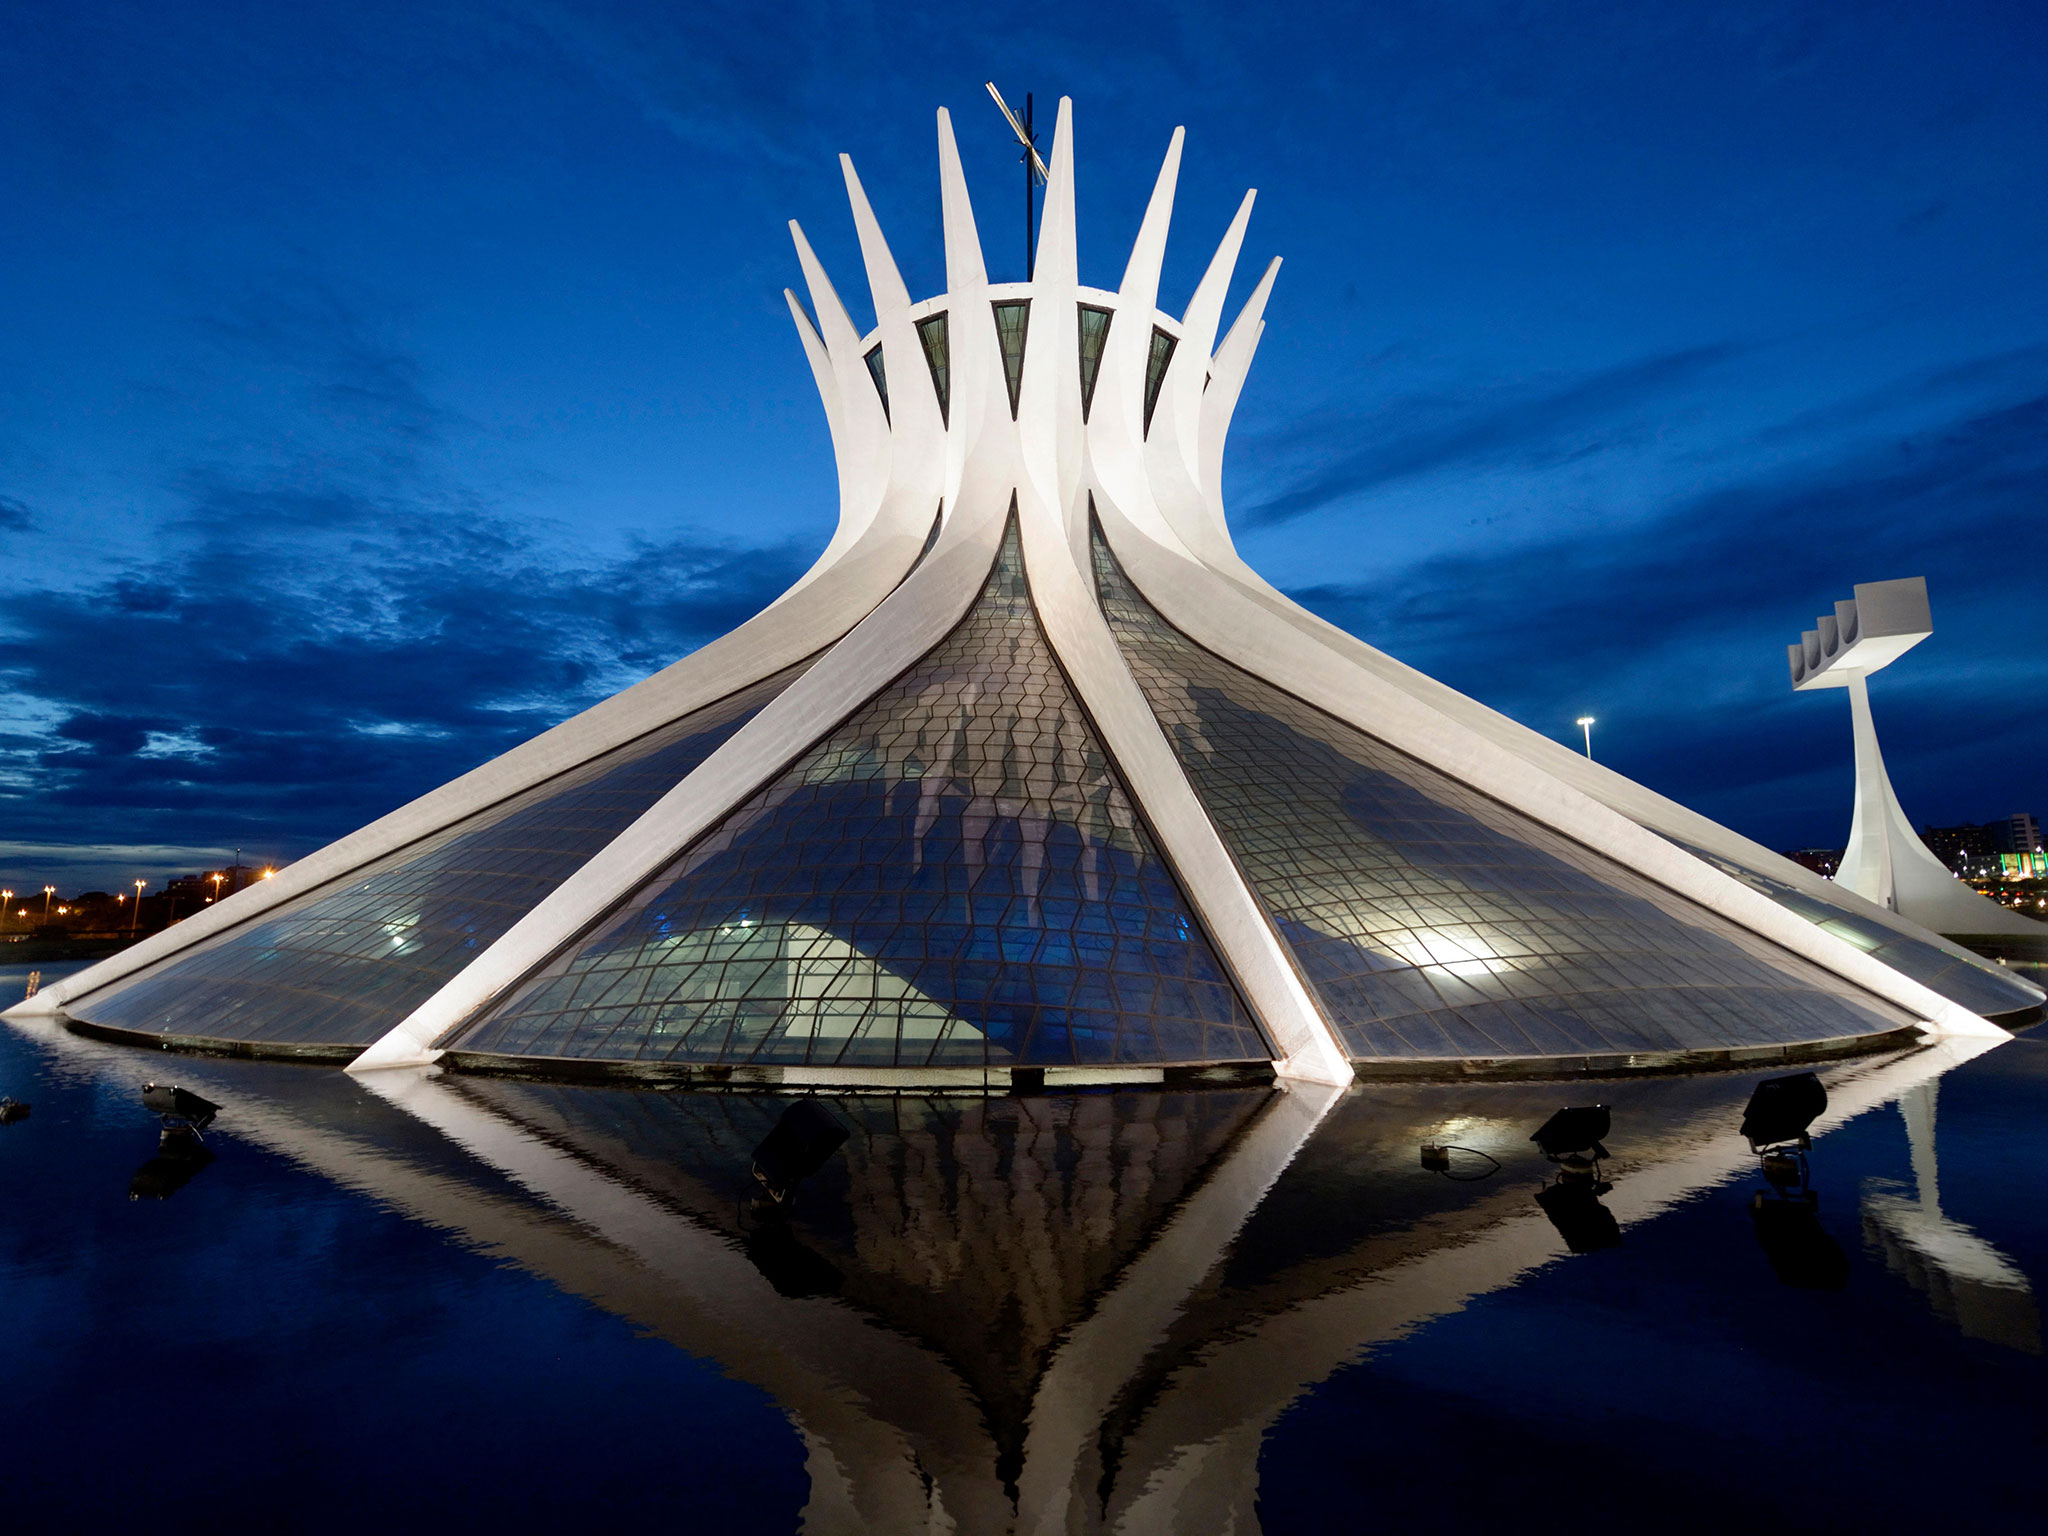 most-beautiful-cathedrals-26